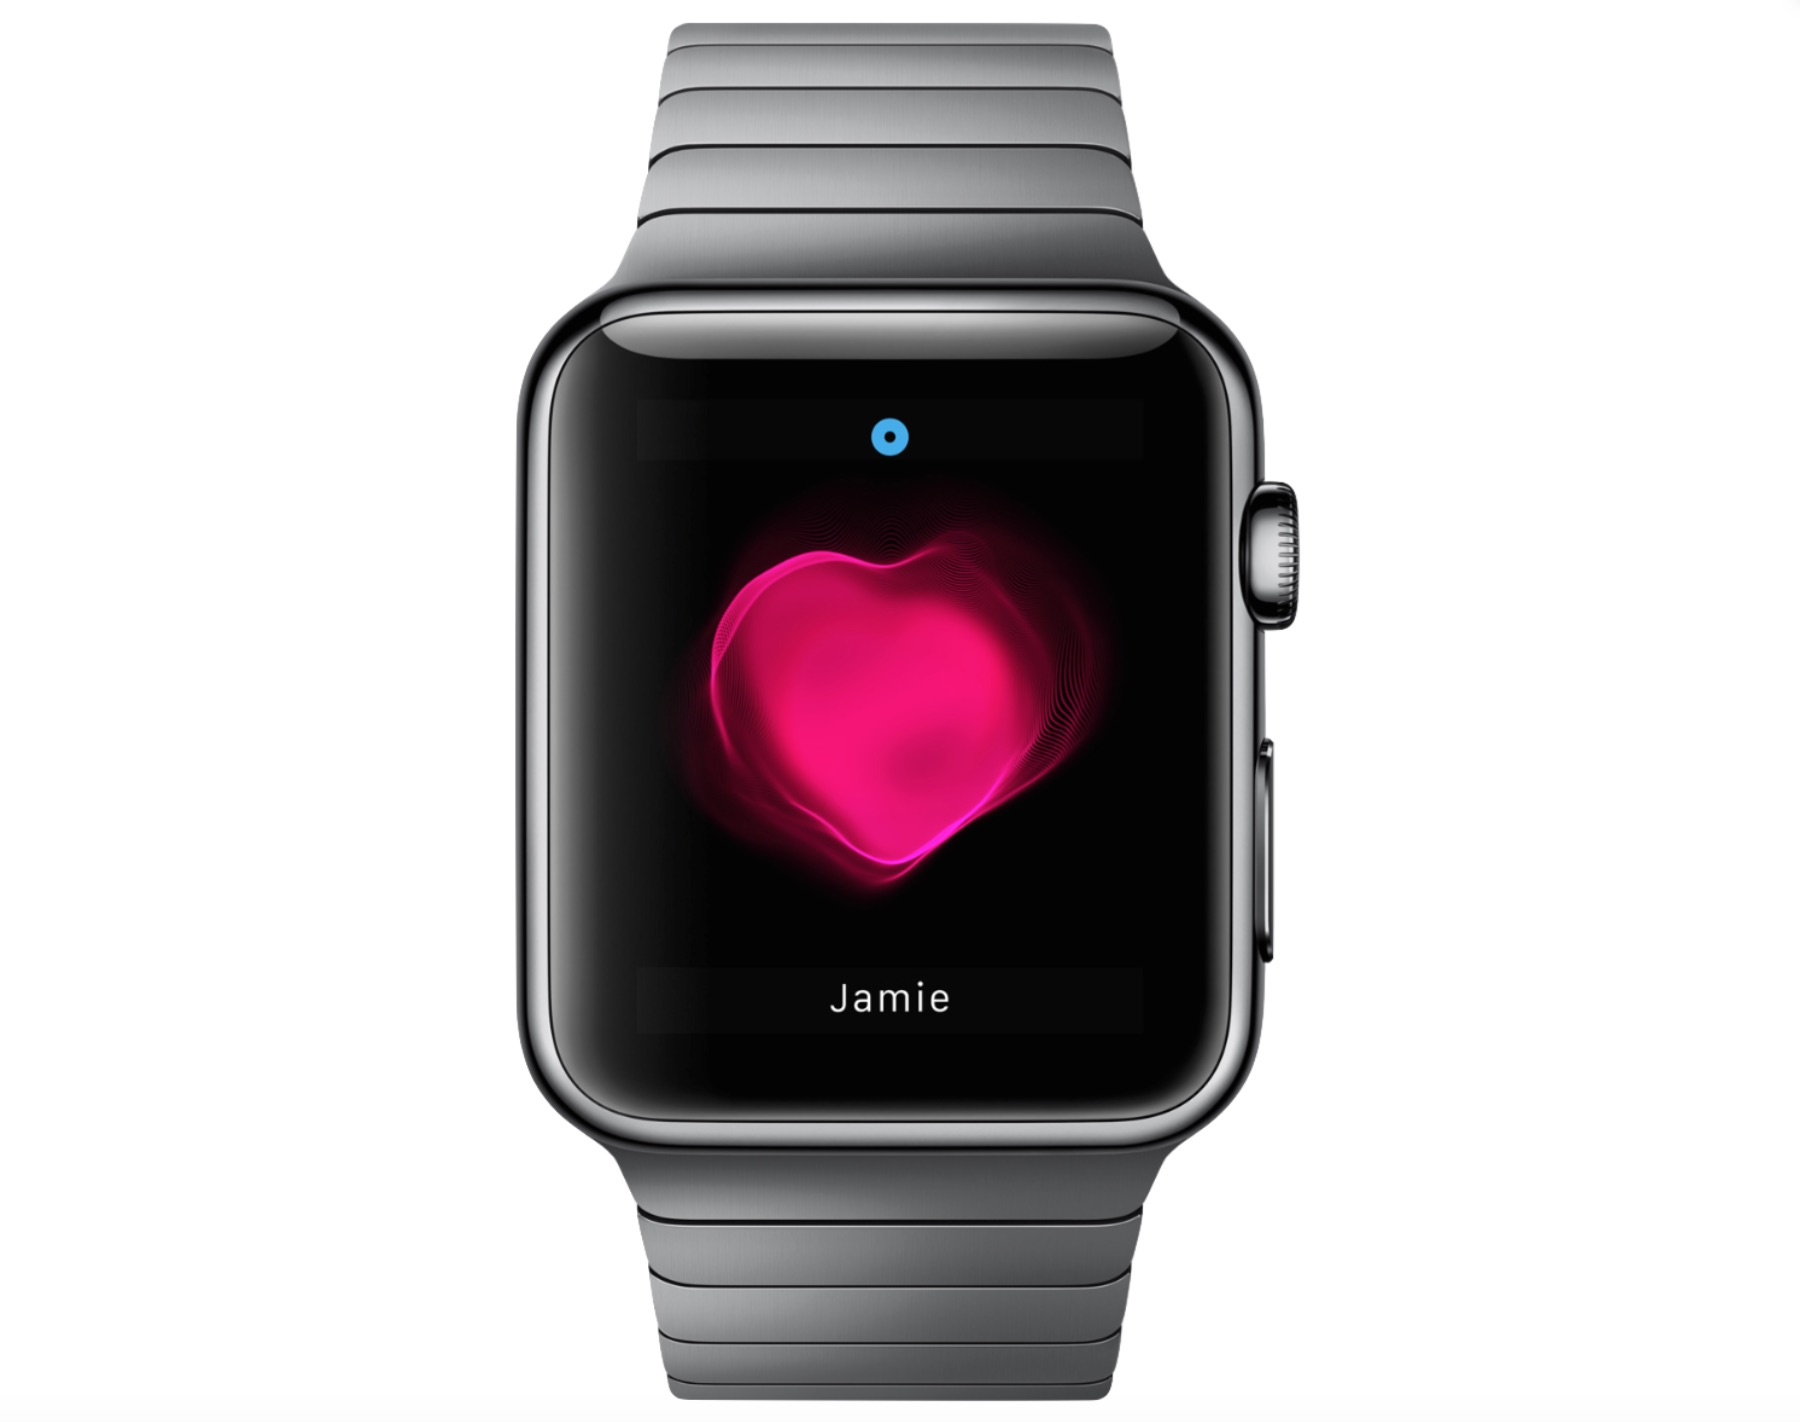 New Apple Watch Tinder app could let you follow your heart